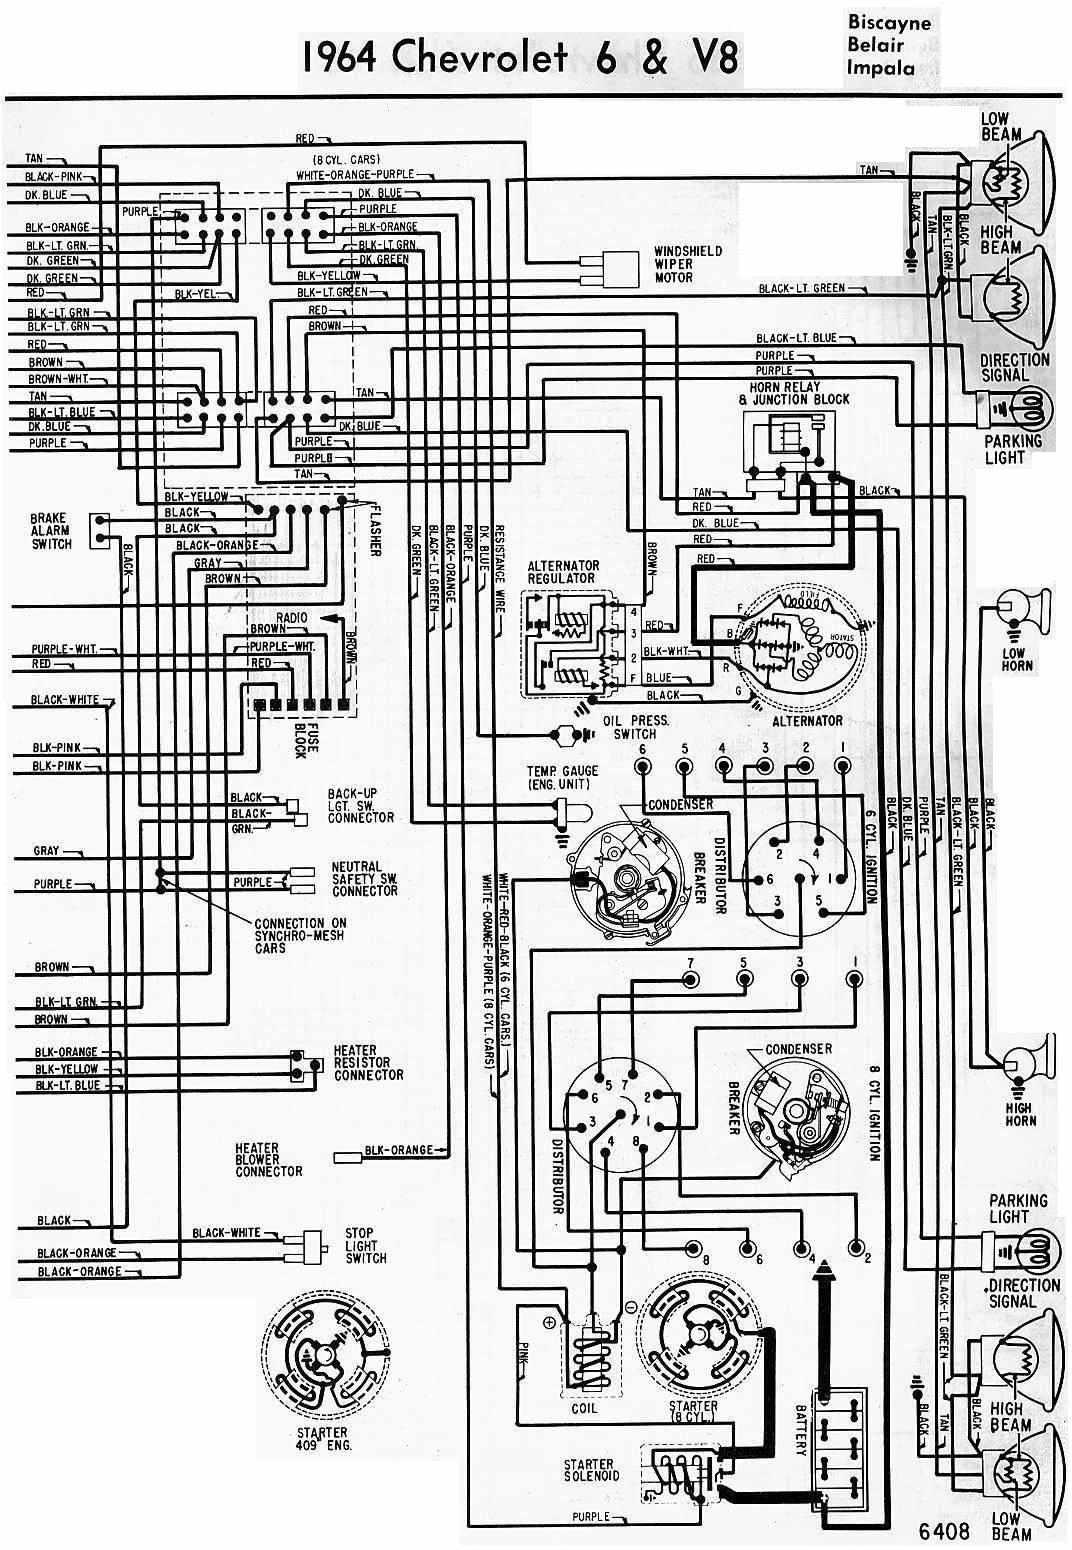 Electrical+Wiring+Diagram+Of+1964+Chevrolet+6+And+V8 1964 impala wiring harness 1996 jeep cherokee wiring \u2022 wiring 1964 impala wiring diagram for ignition at webbmarketing.co